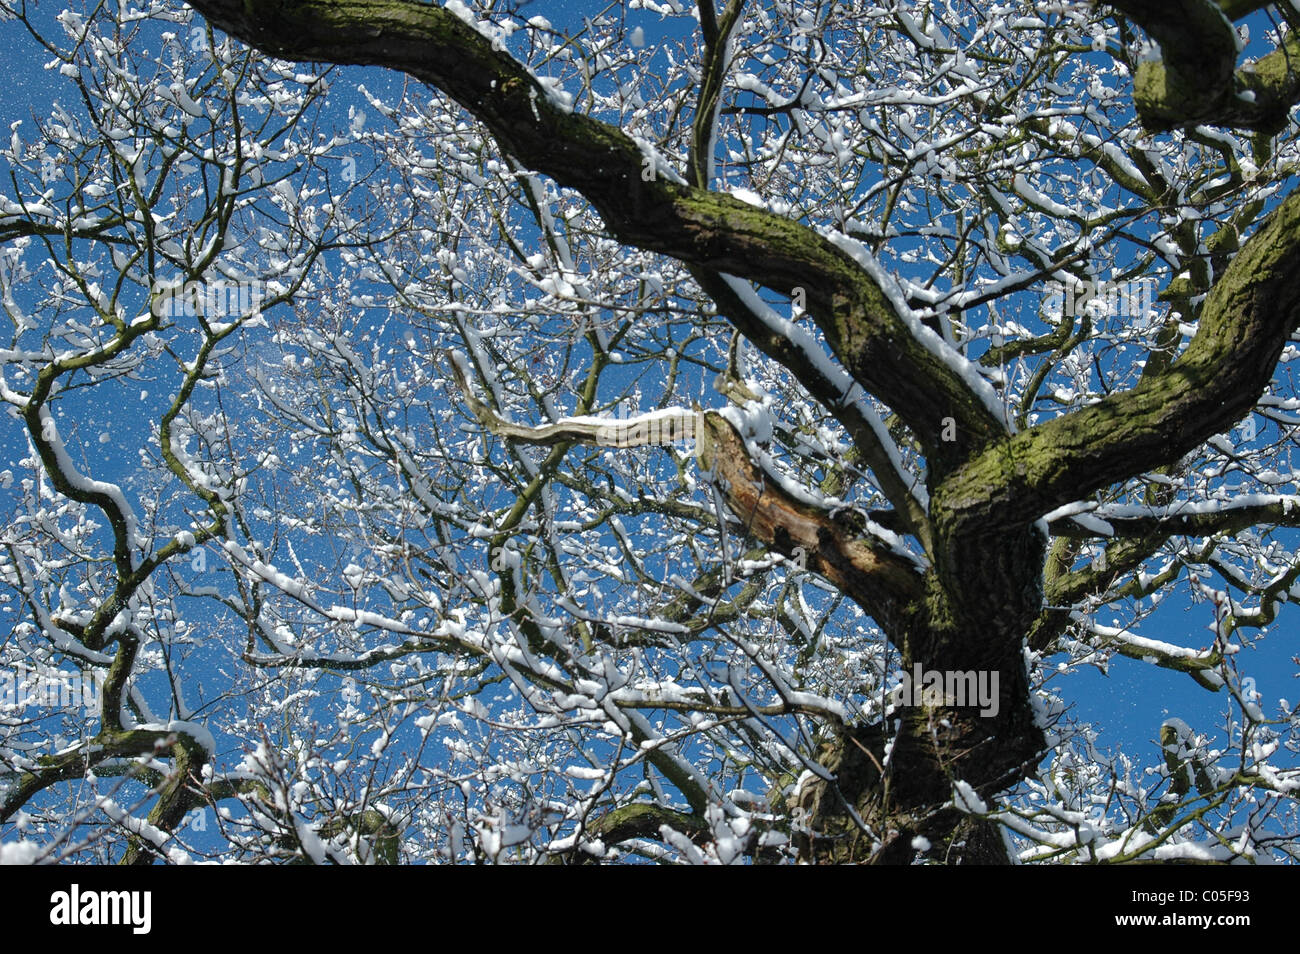 A tree with snow on branches in The National Forest, Derbyshire UK. - Stock Image